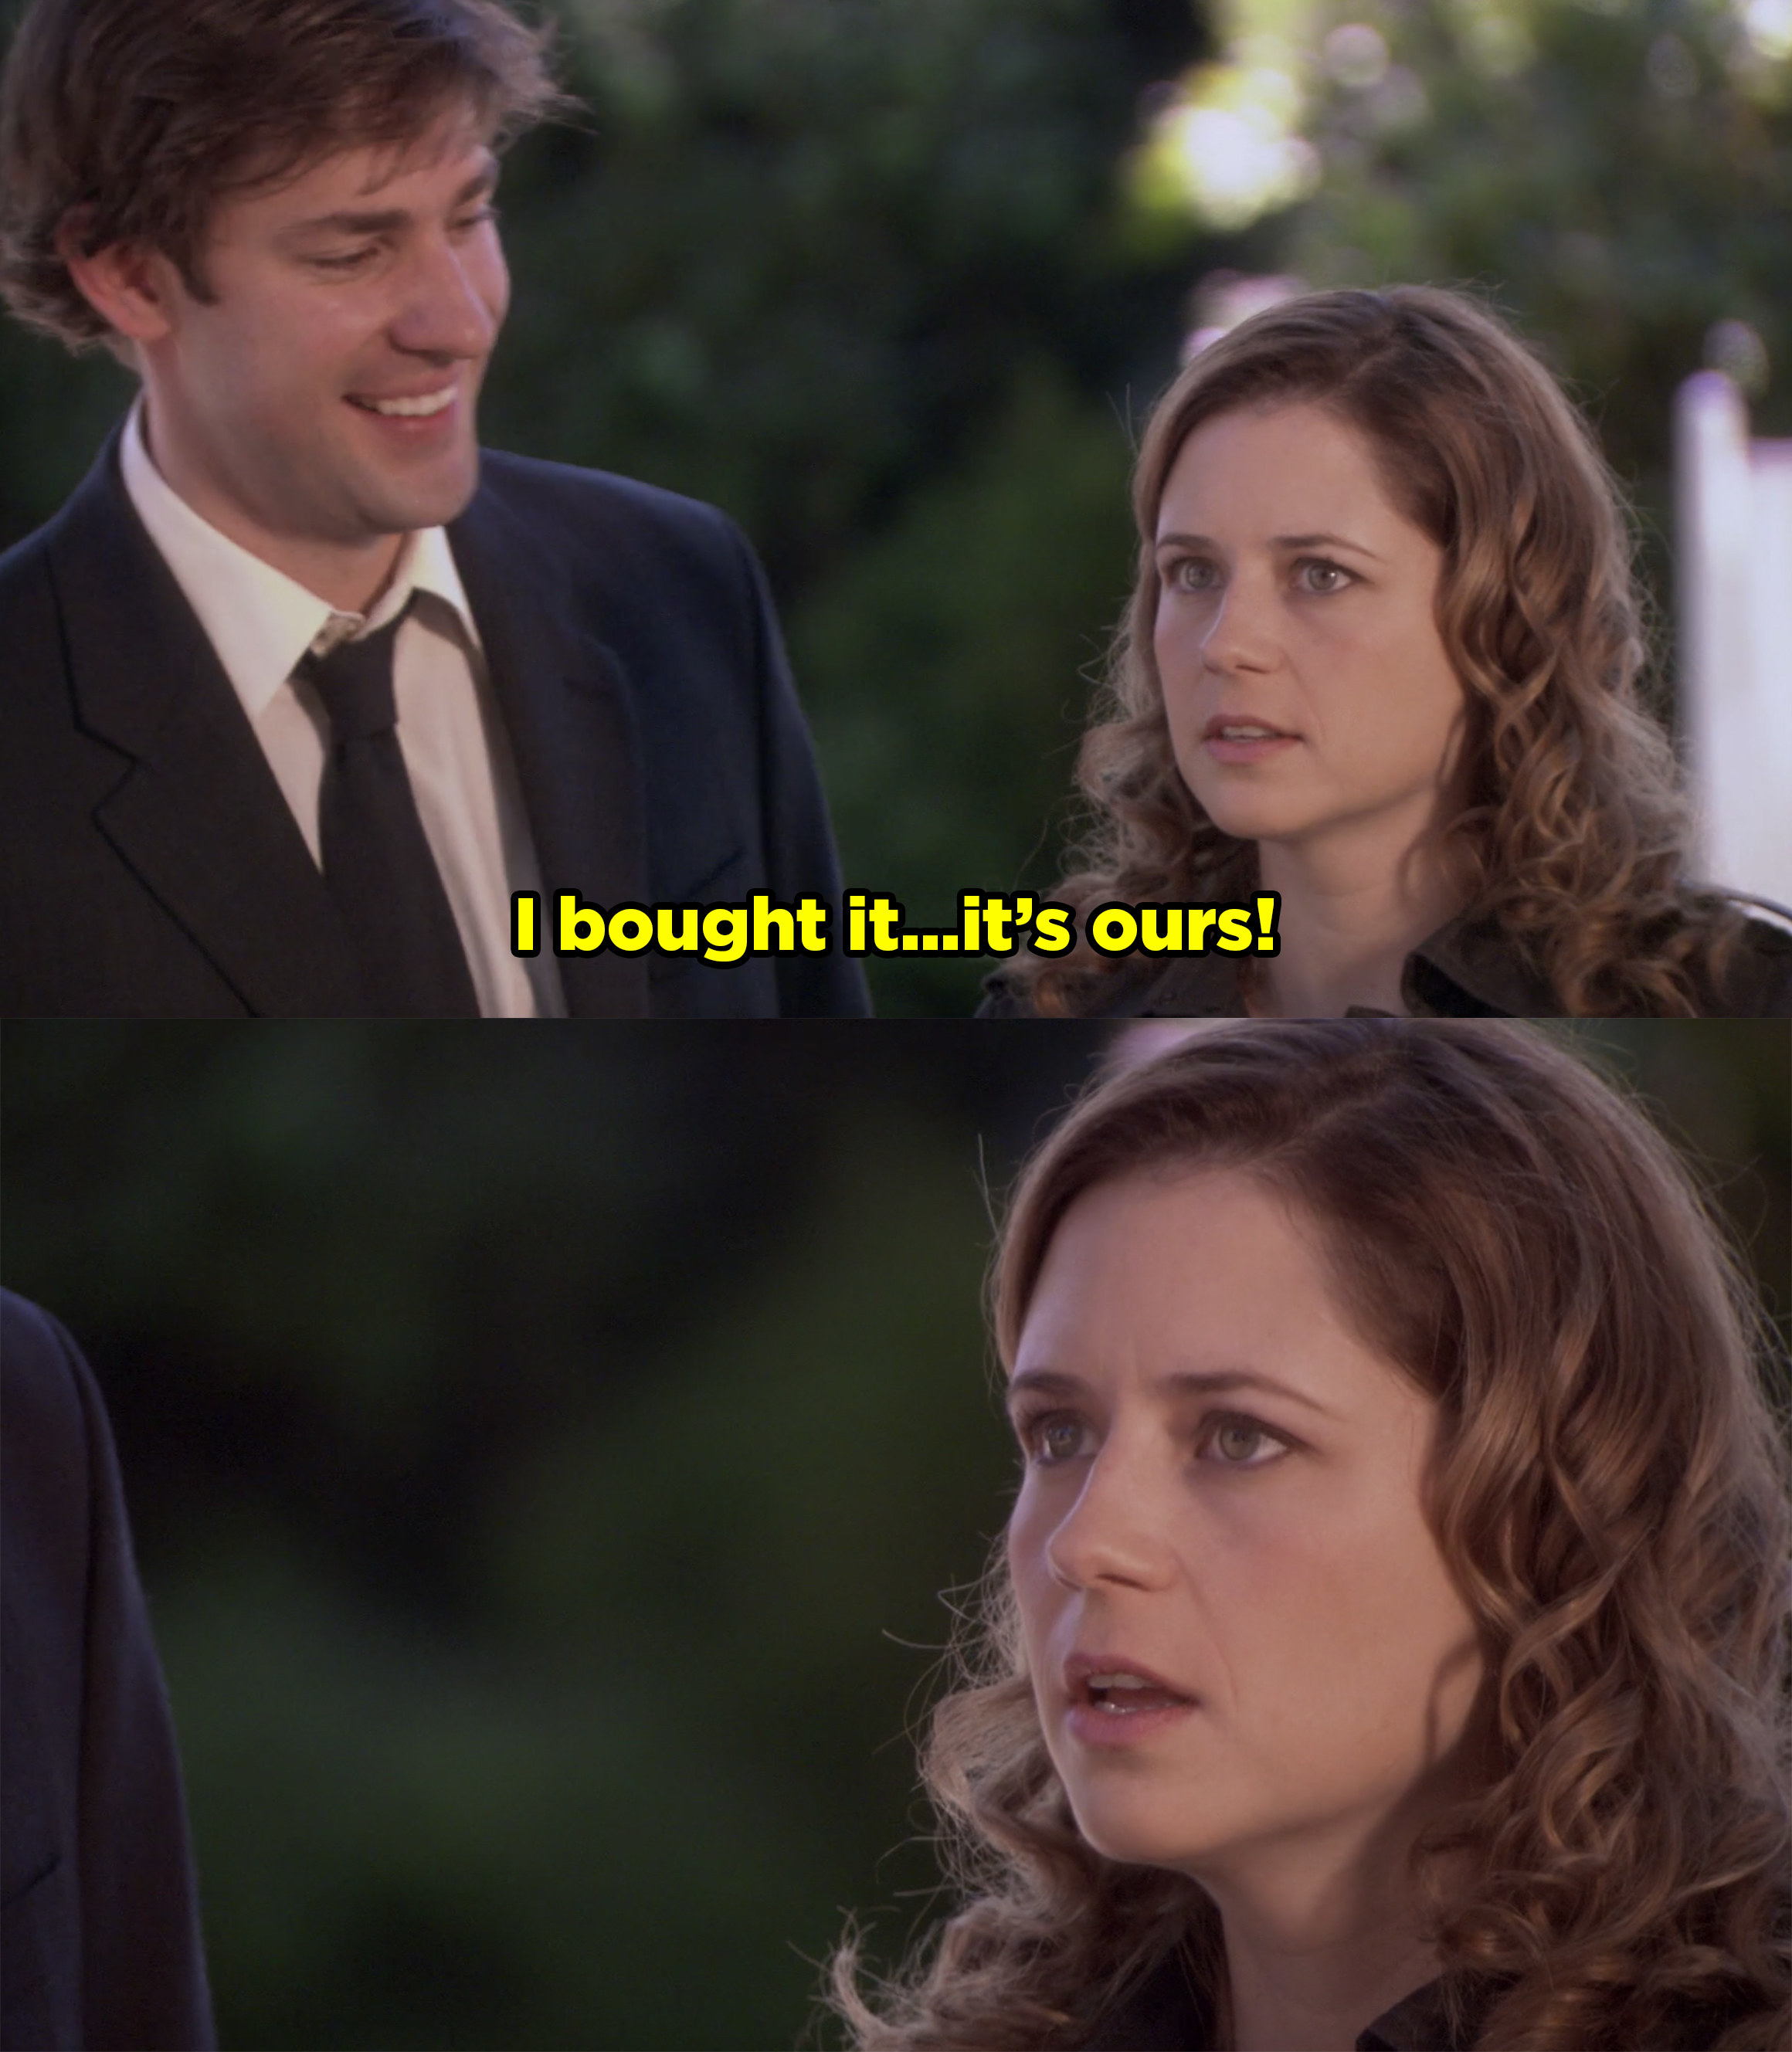 Jim telling Pam he bought her a house and Pam standing in awe.